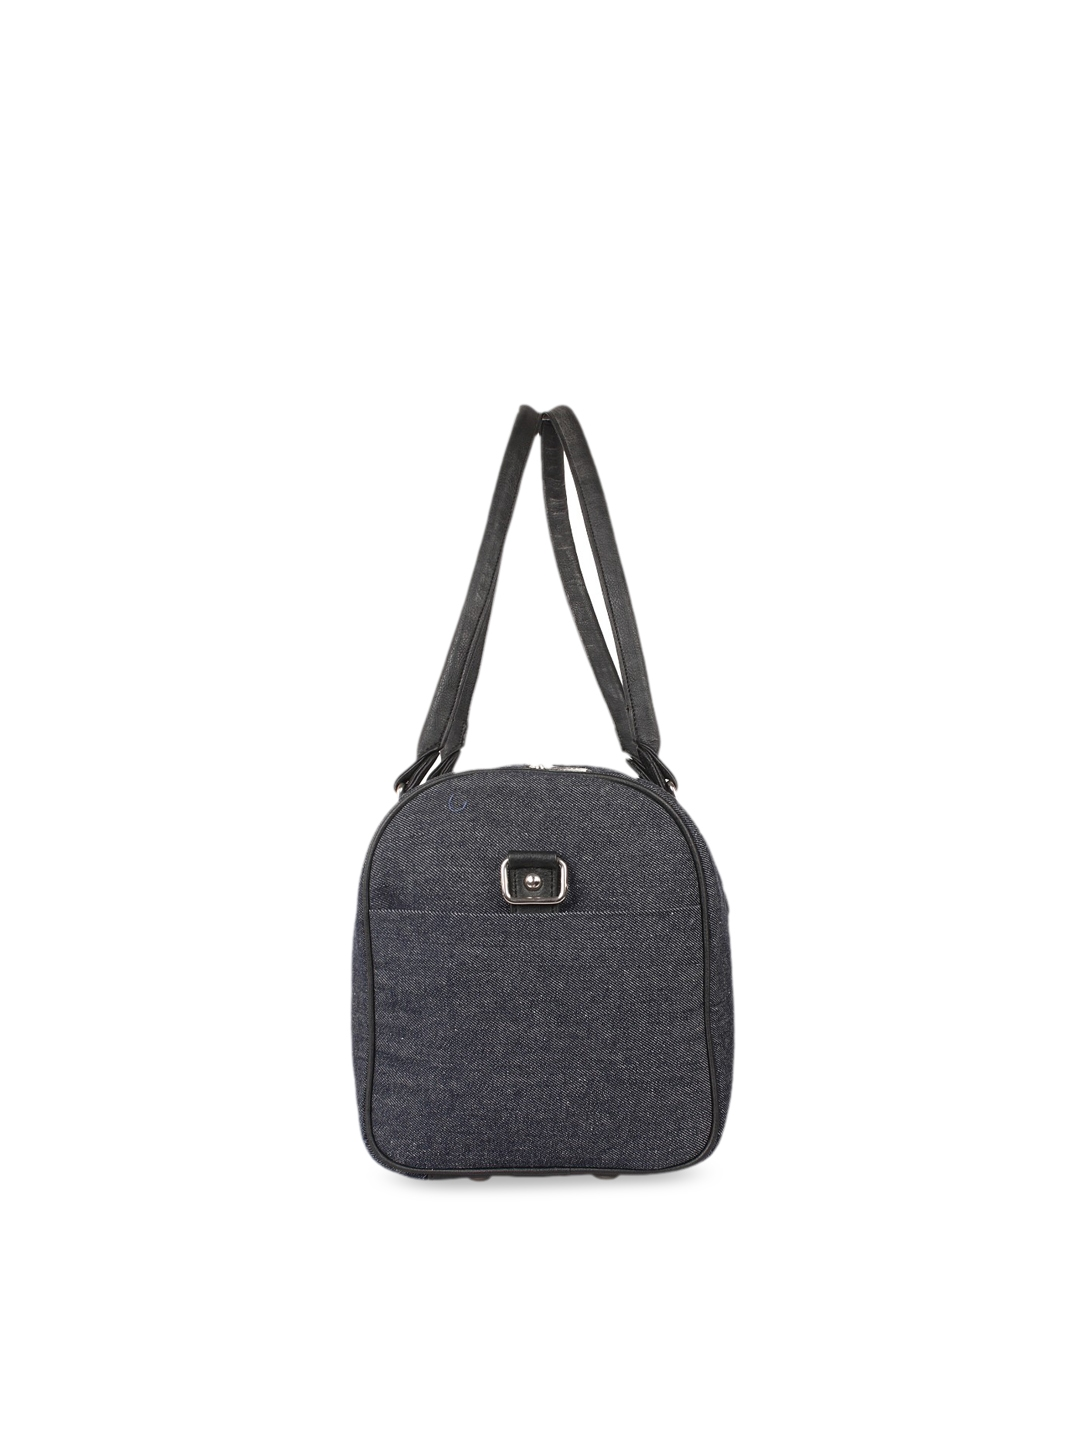 f947699f6fcd Buy Pick Pocket Navy Blue Solid Denim Duffle Bag - Duffel Bag for ...